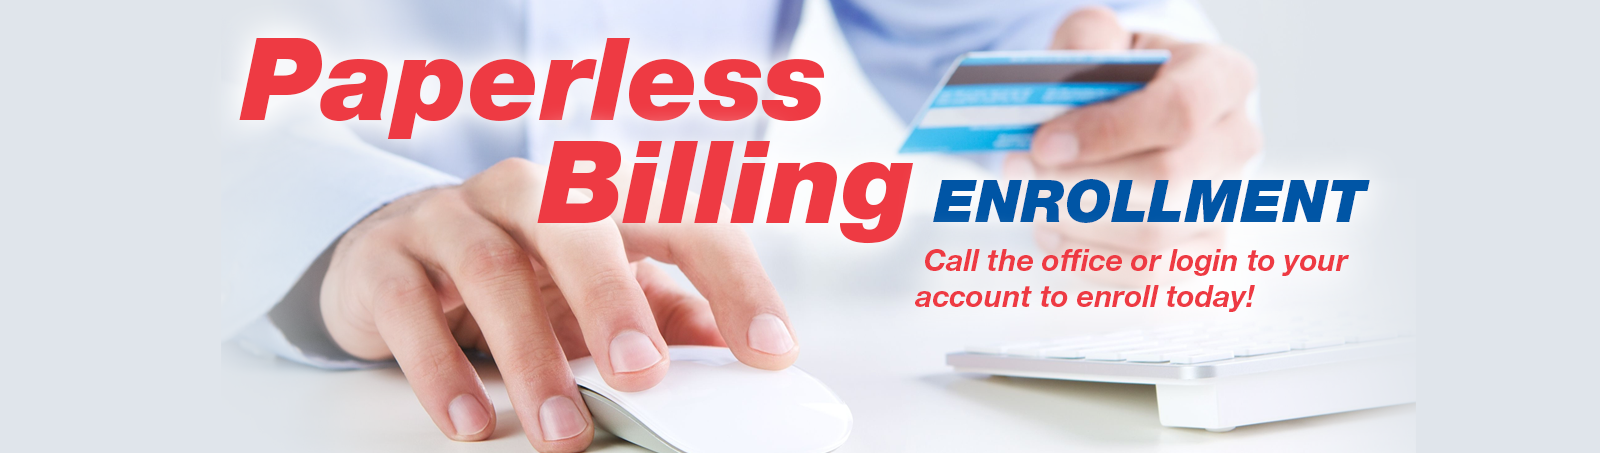 paperless-billing-123rF-15527017.png